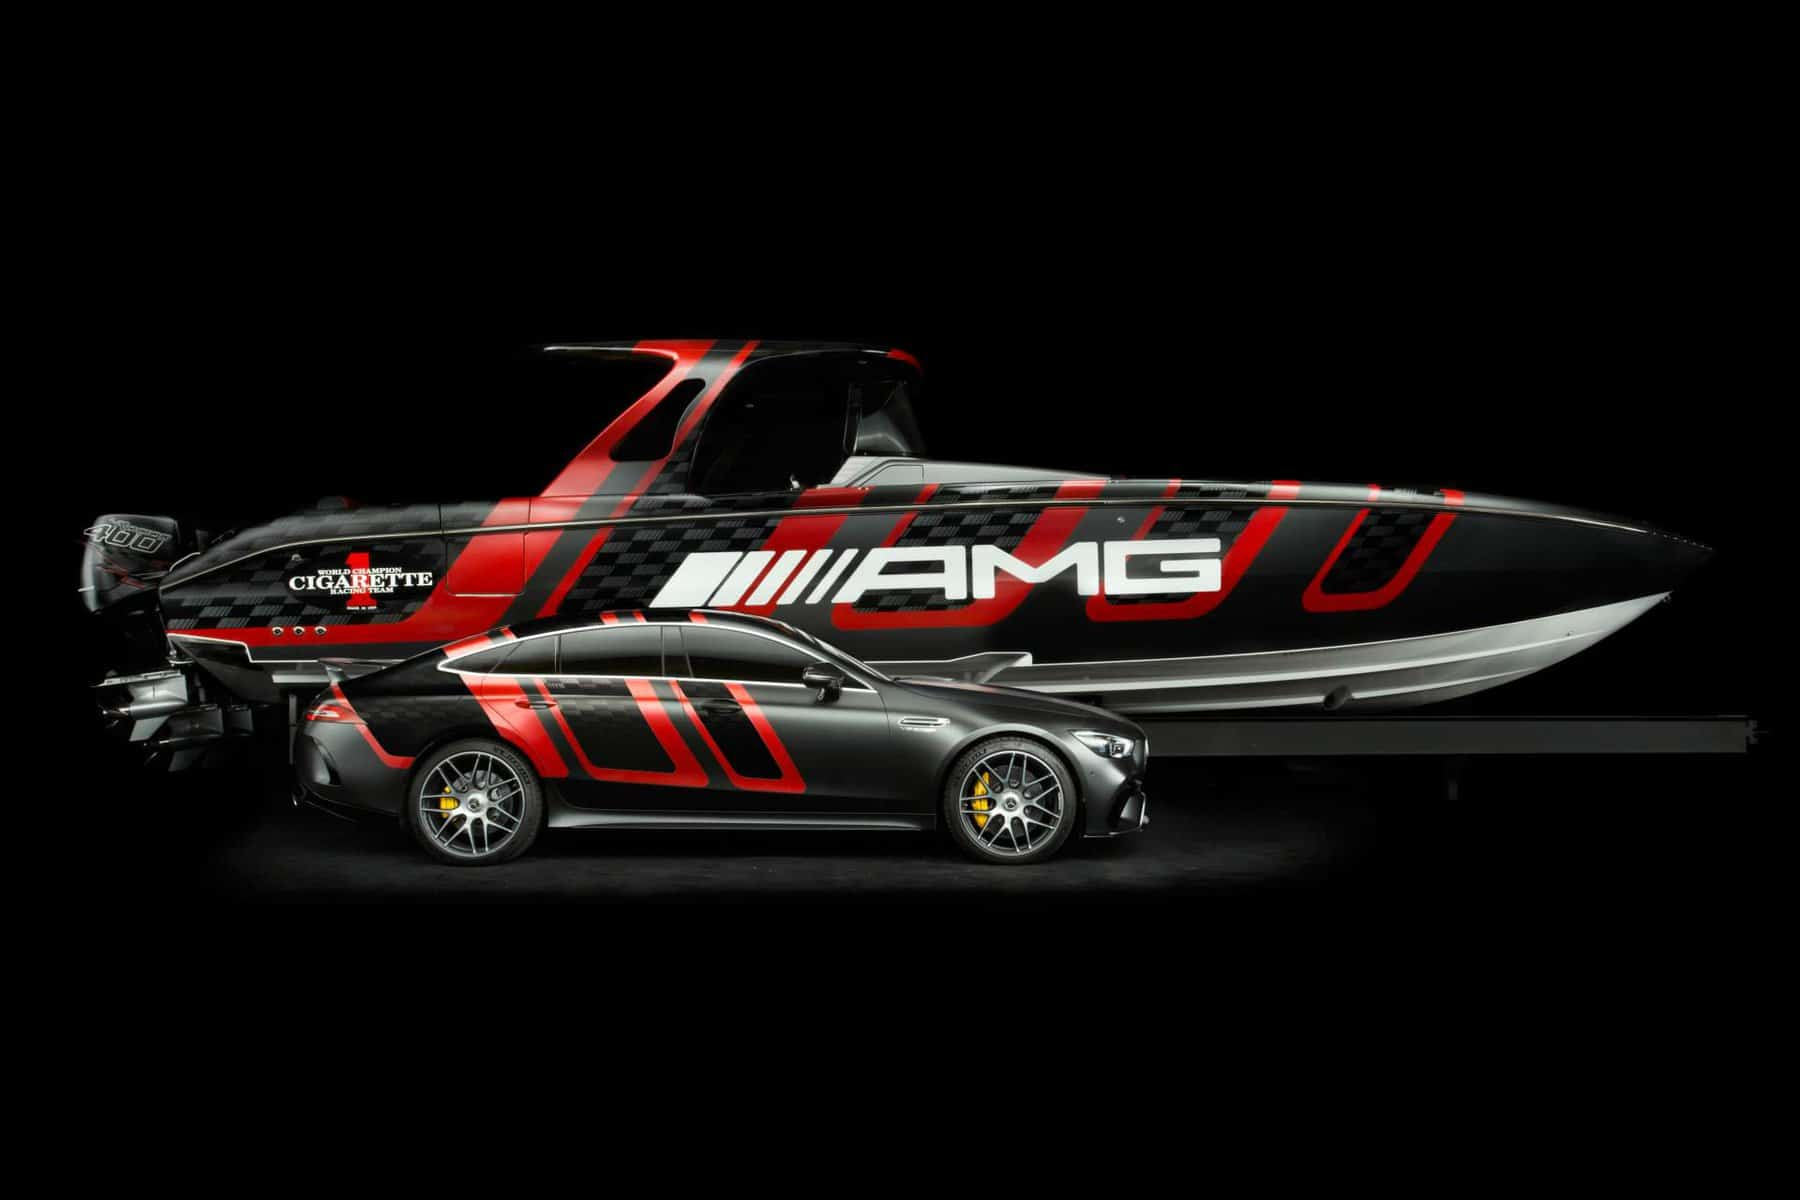 amg-carbon-edition-speedboat-from-mercedes-amg-and-cigarette-racing-1